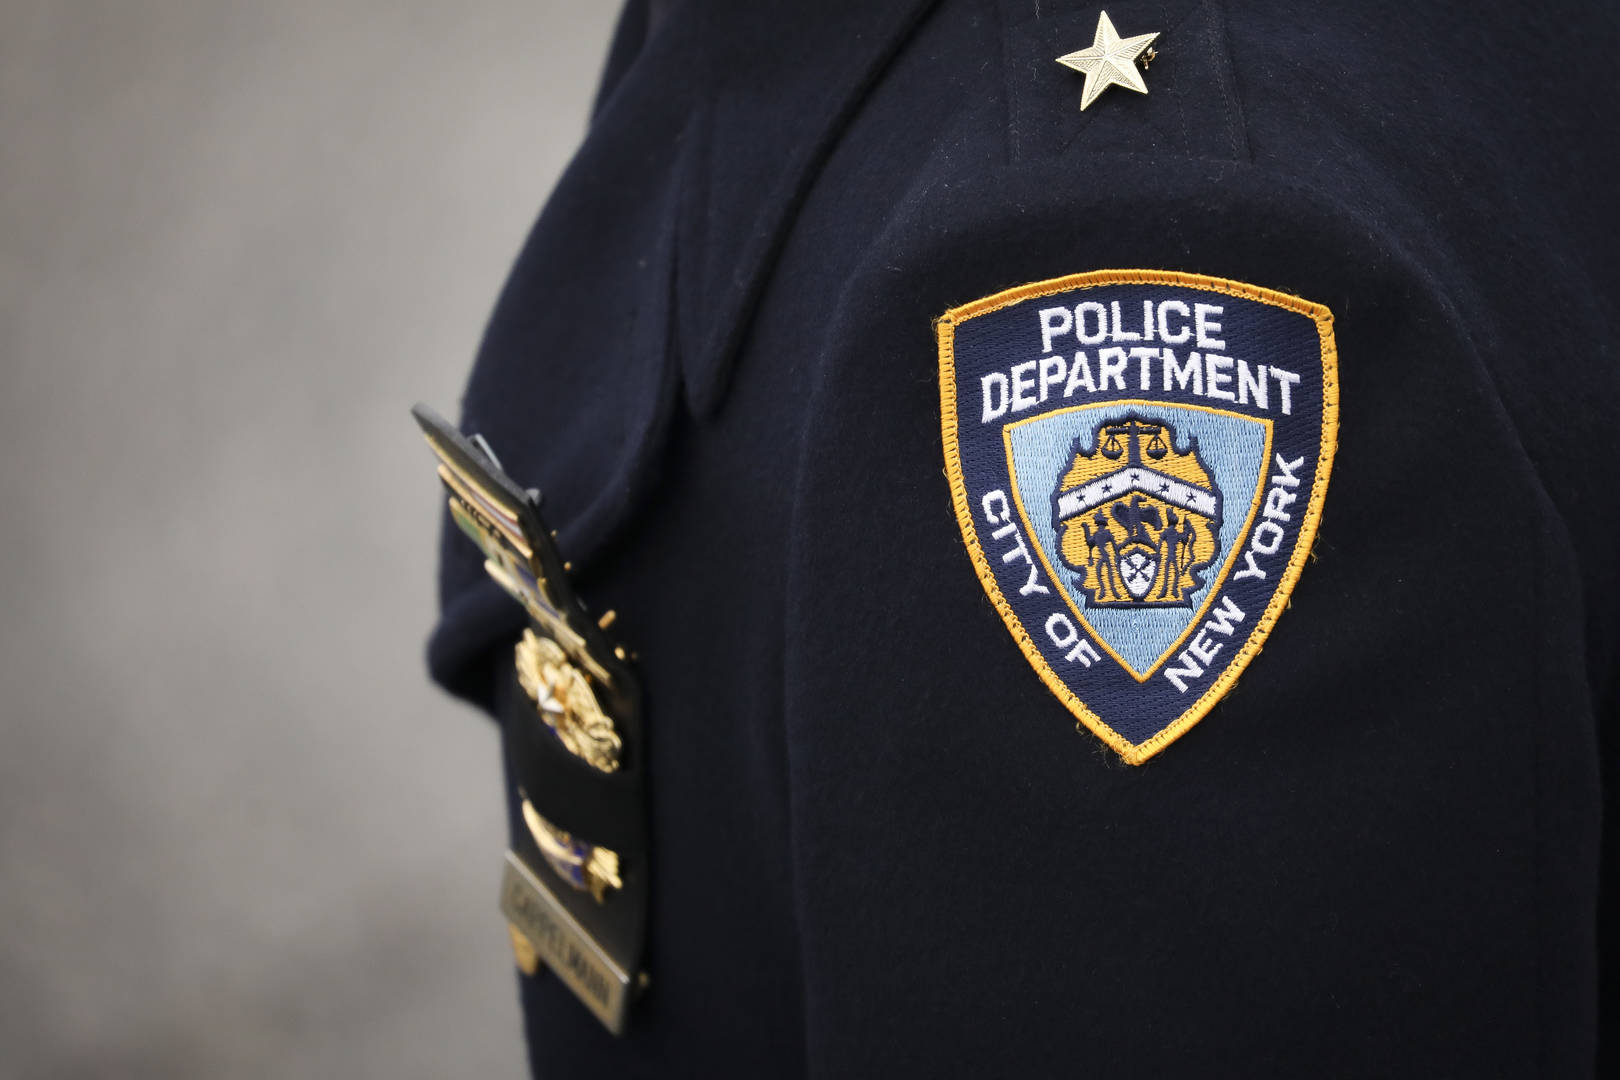 NYPD Clears Up Rumor That They Shot 13-Year-Old, Claims They Took Down Adult Gunman